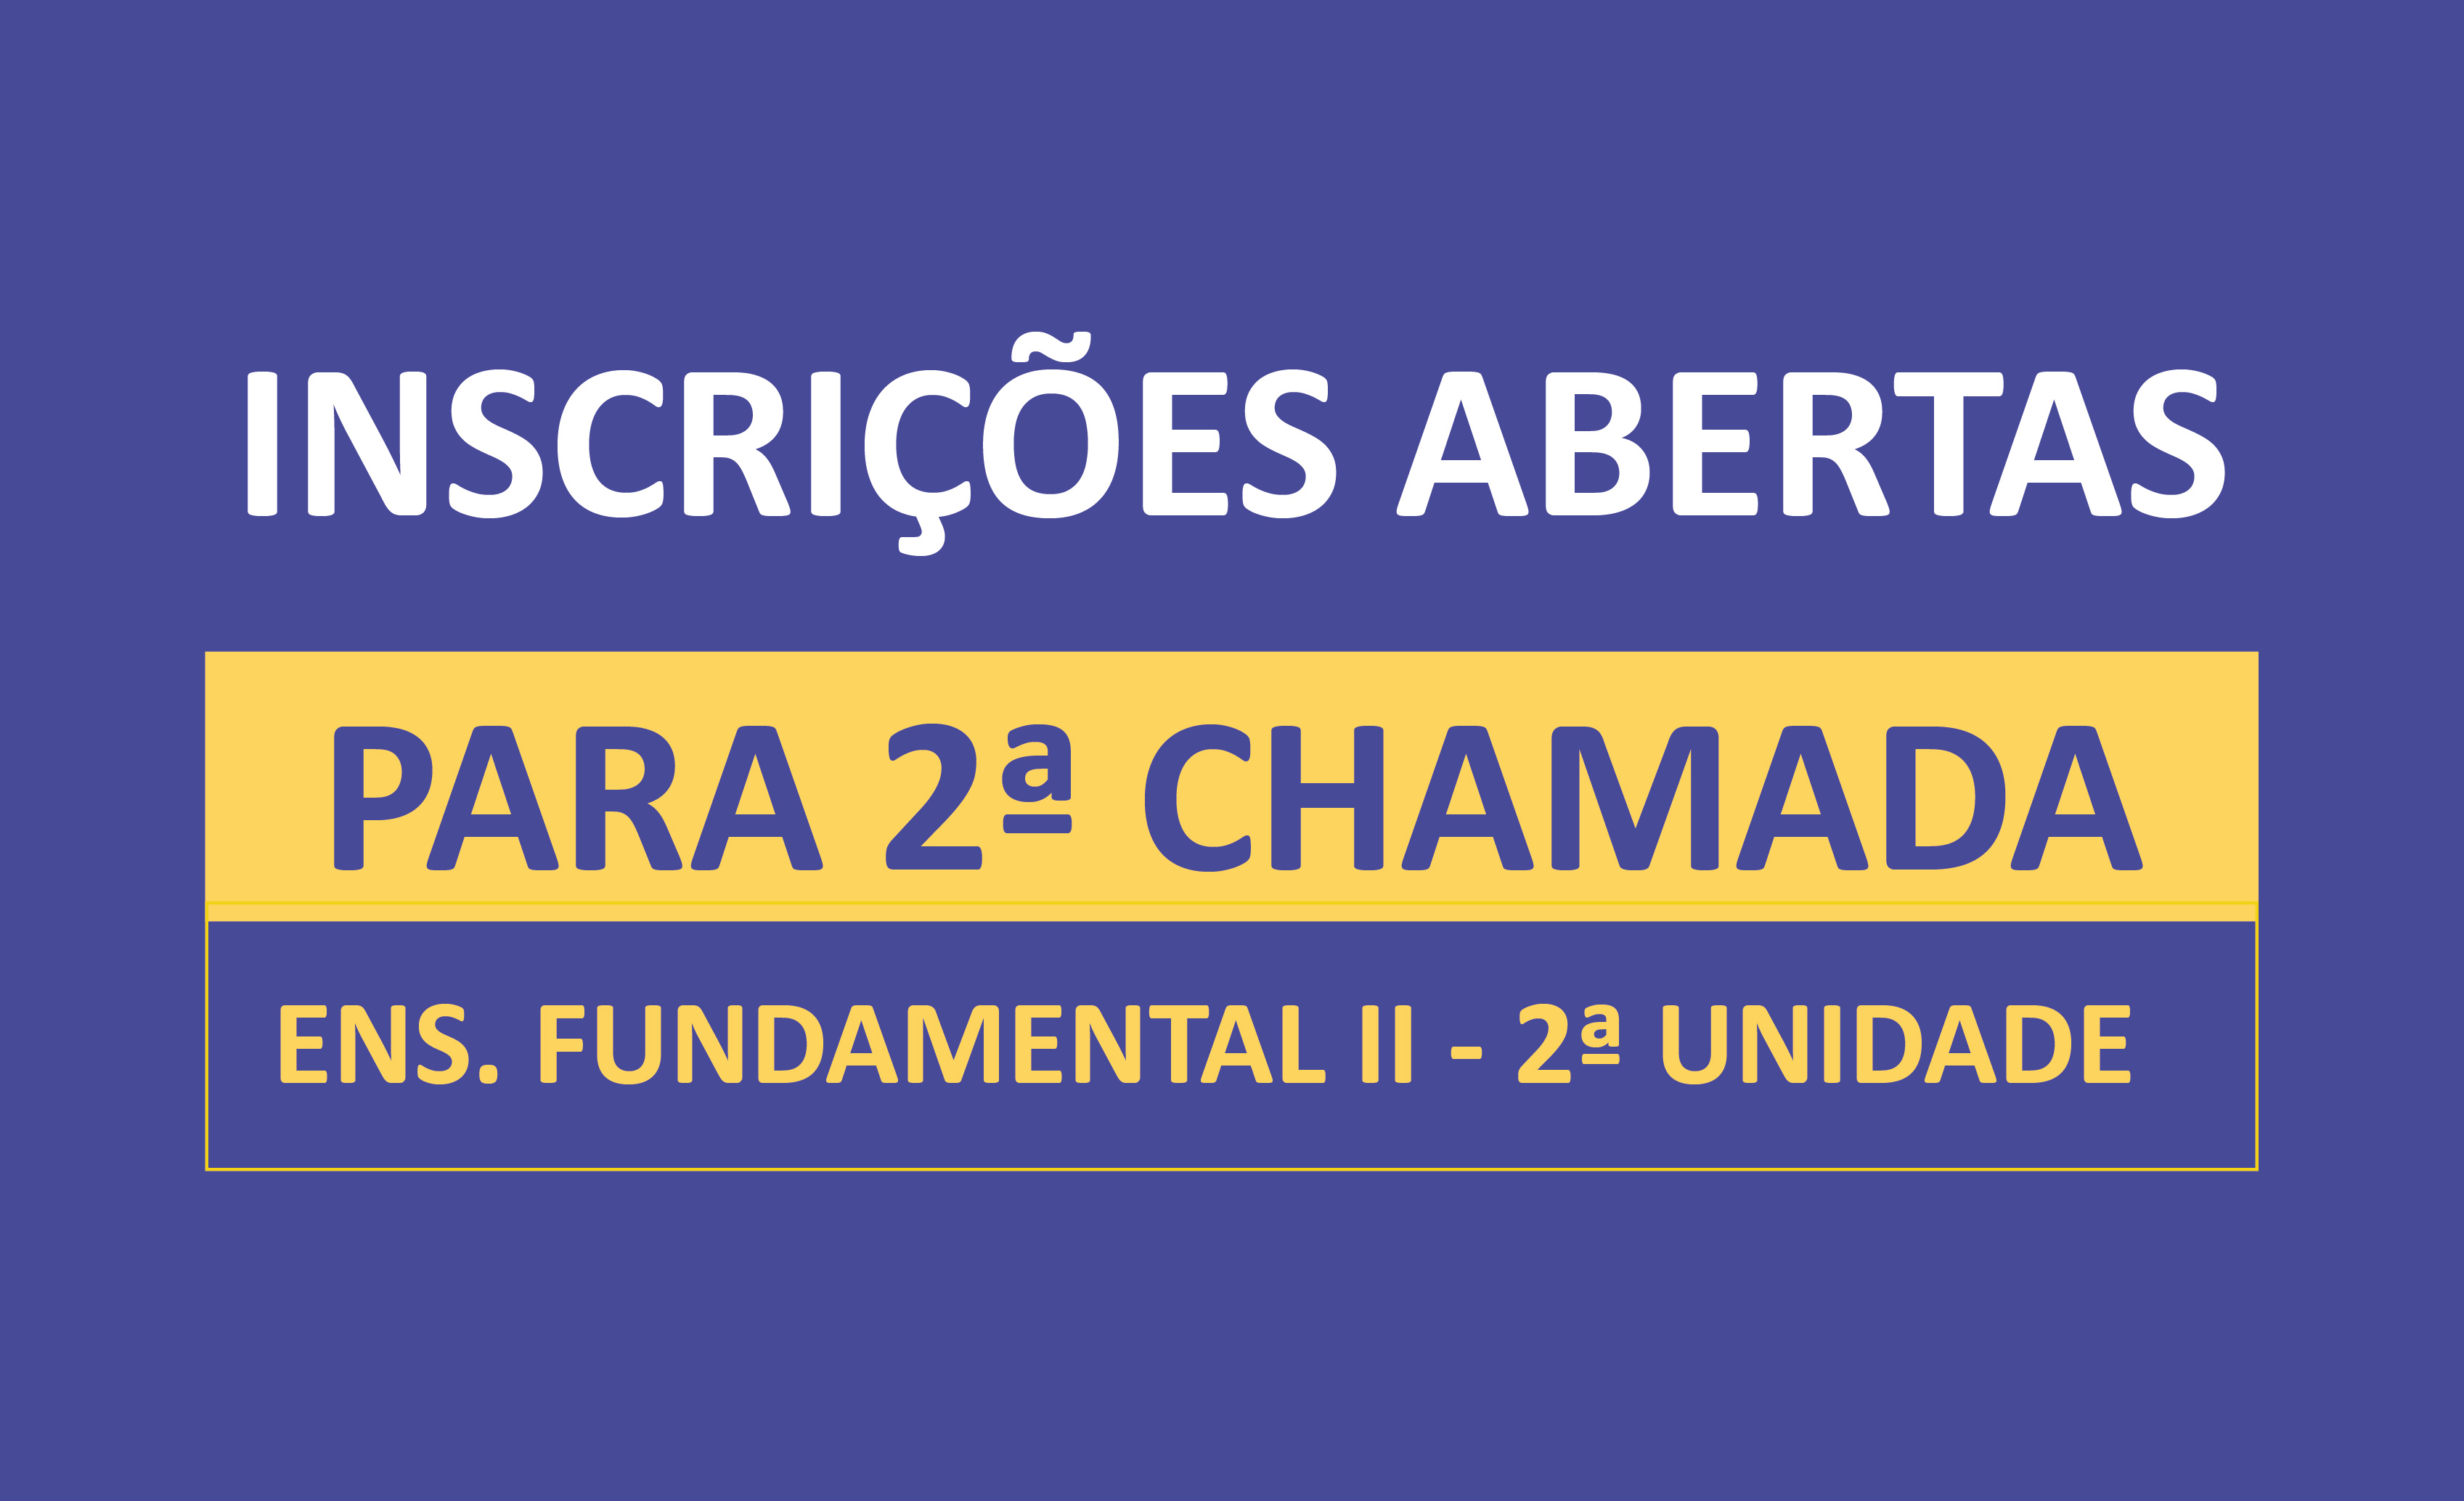 2ª chamada - Ens. Fundamental II